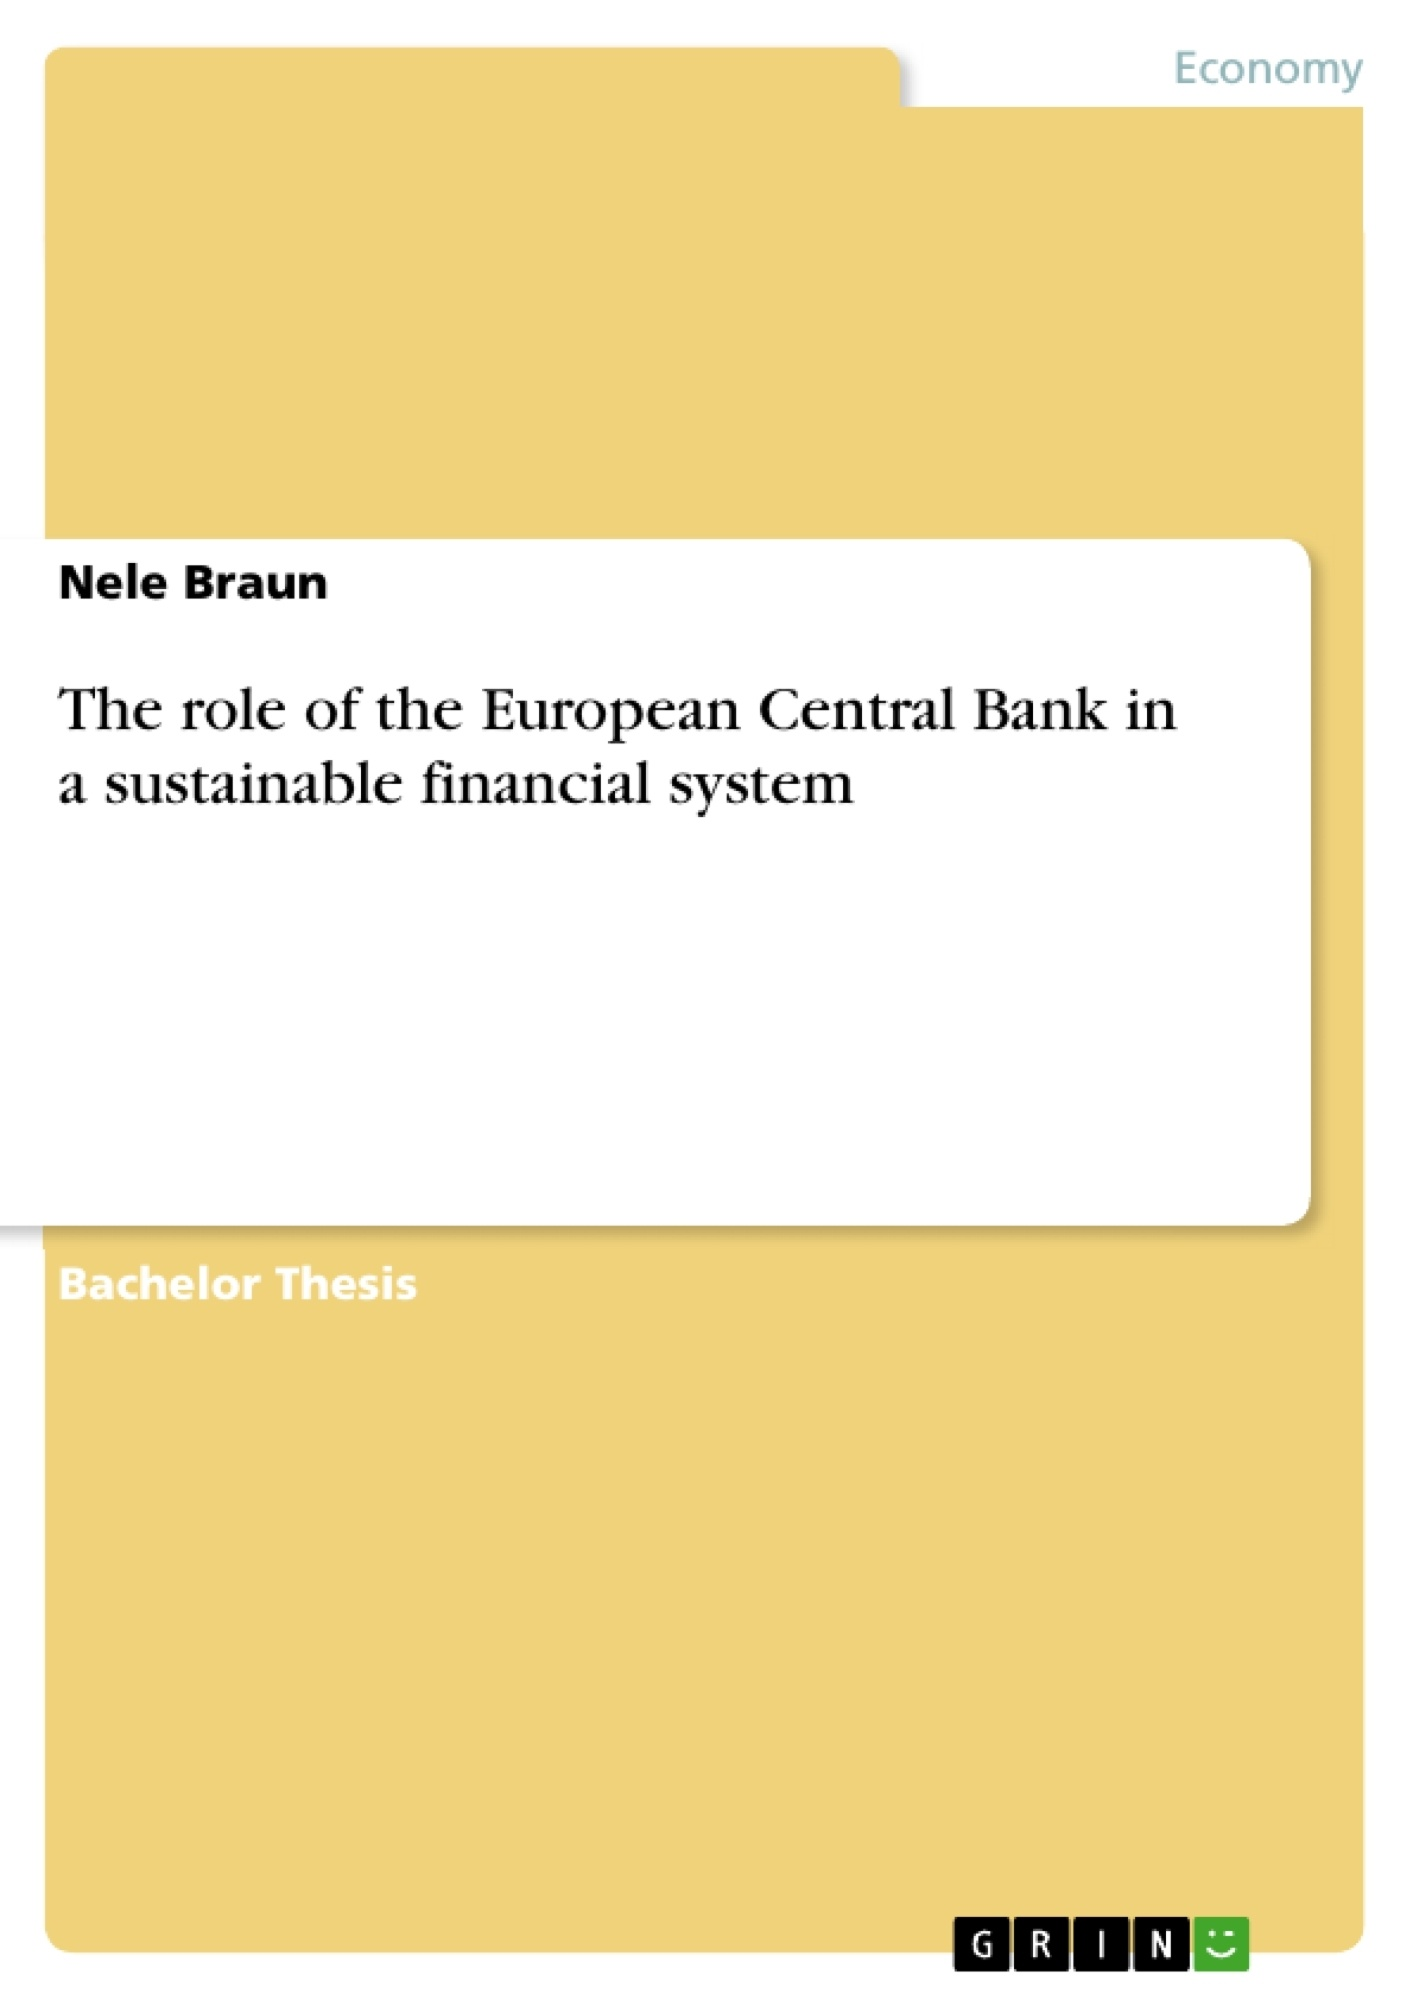 Title: The role of the European Central Bank in a sustainable financial system